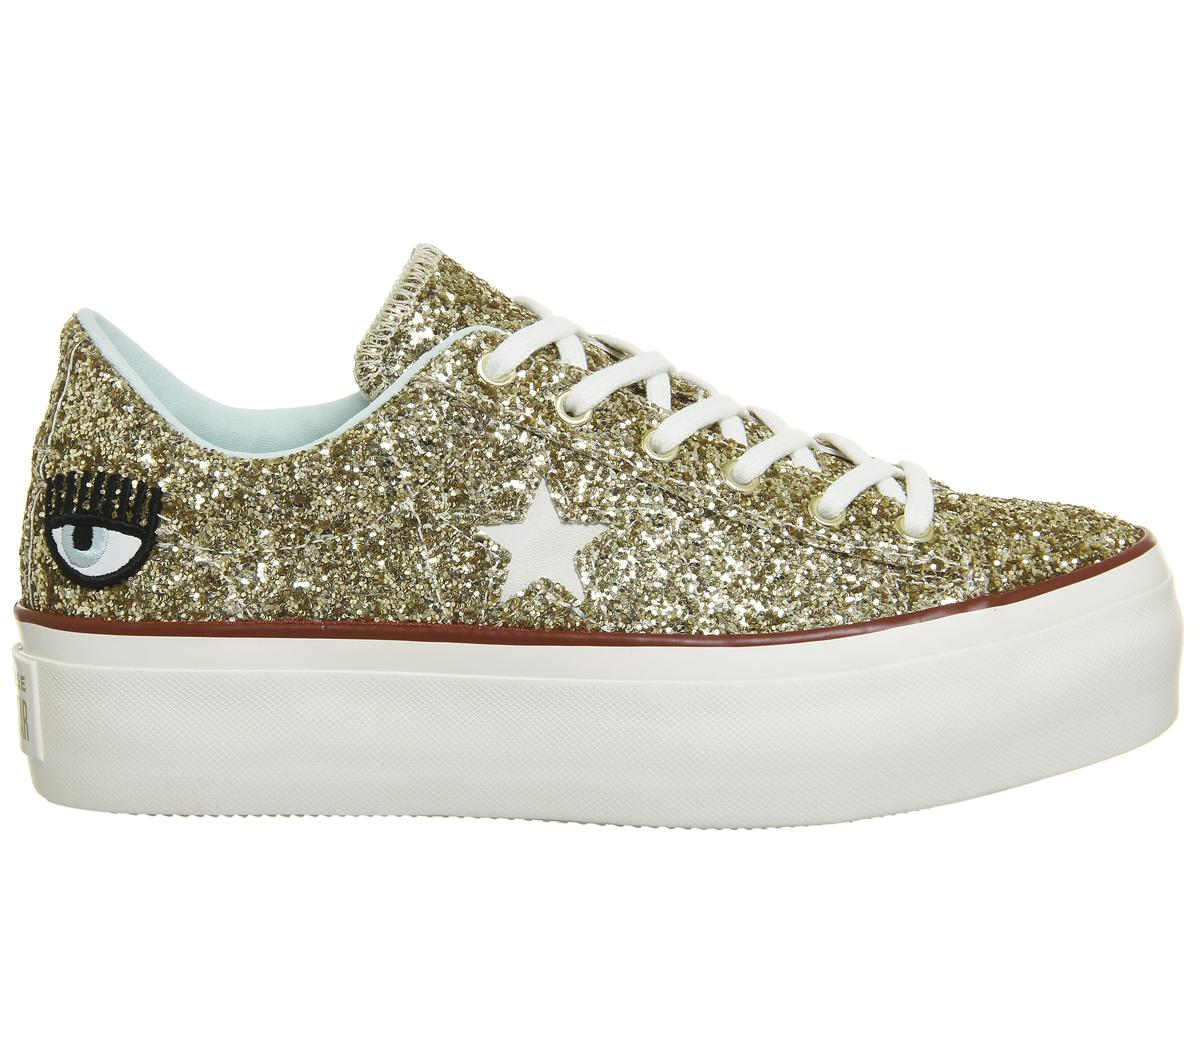 55a69d5a7626 Lyst - Converse One Star Platforms in Metallic